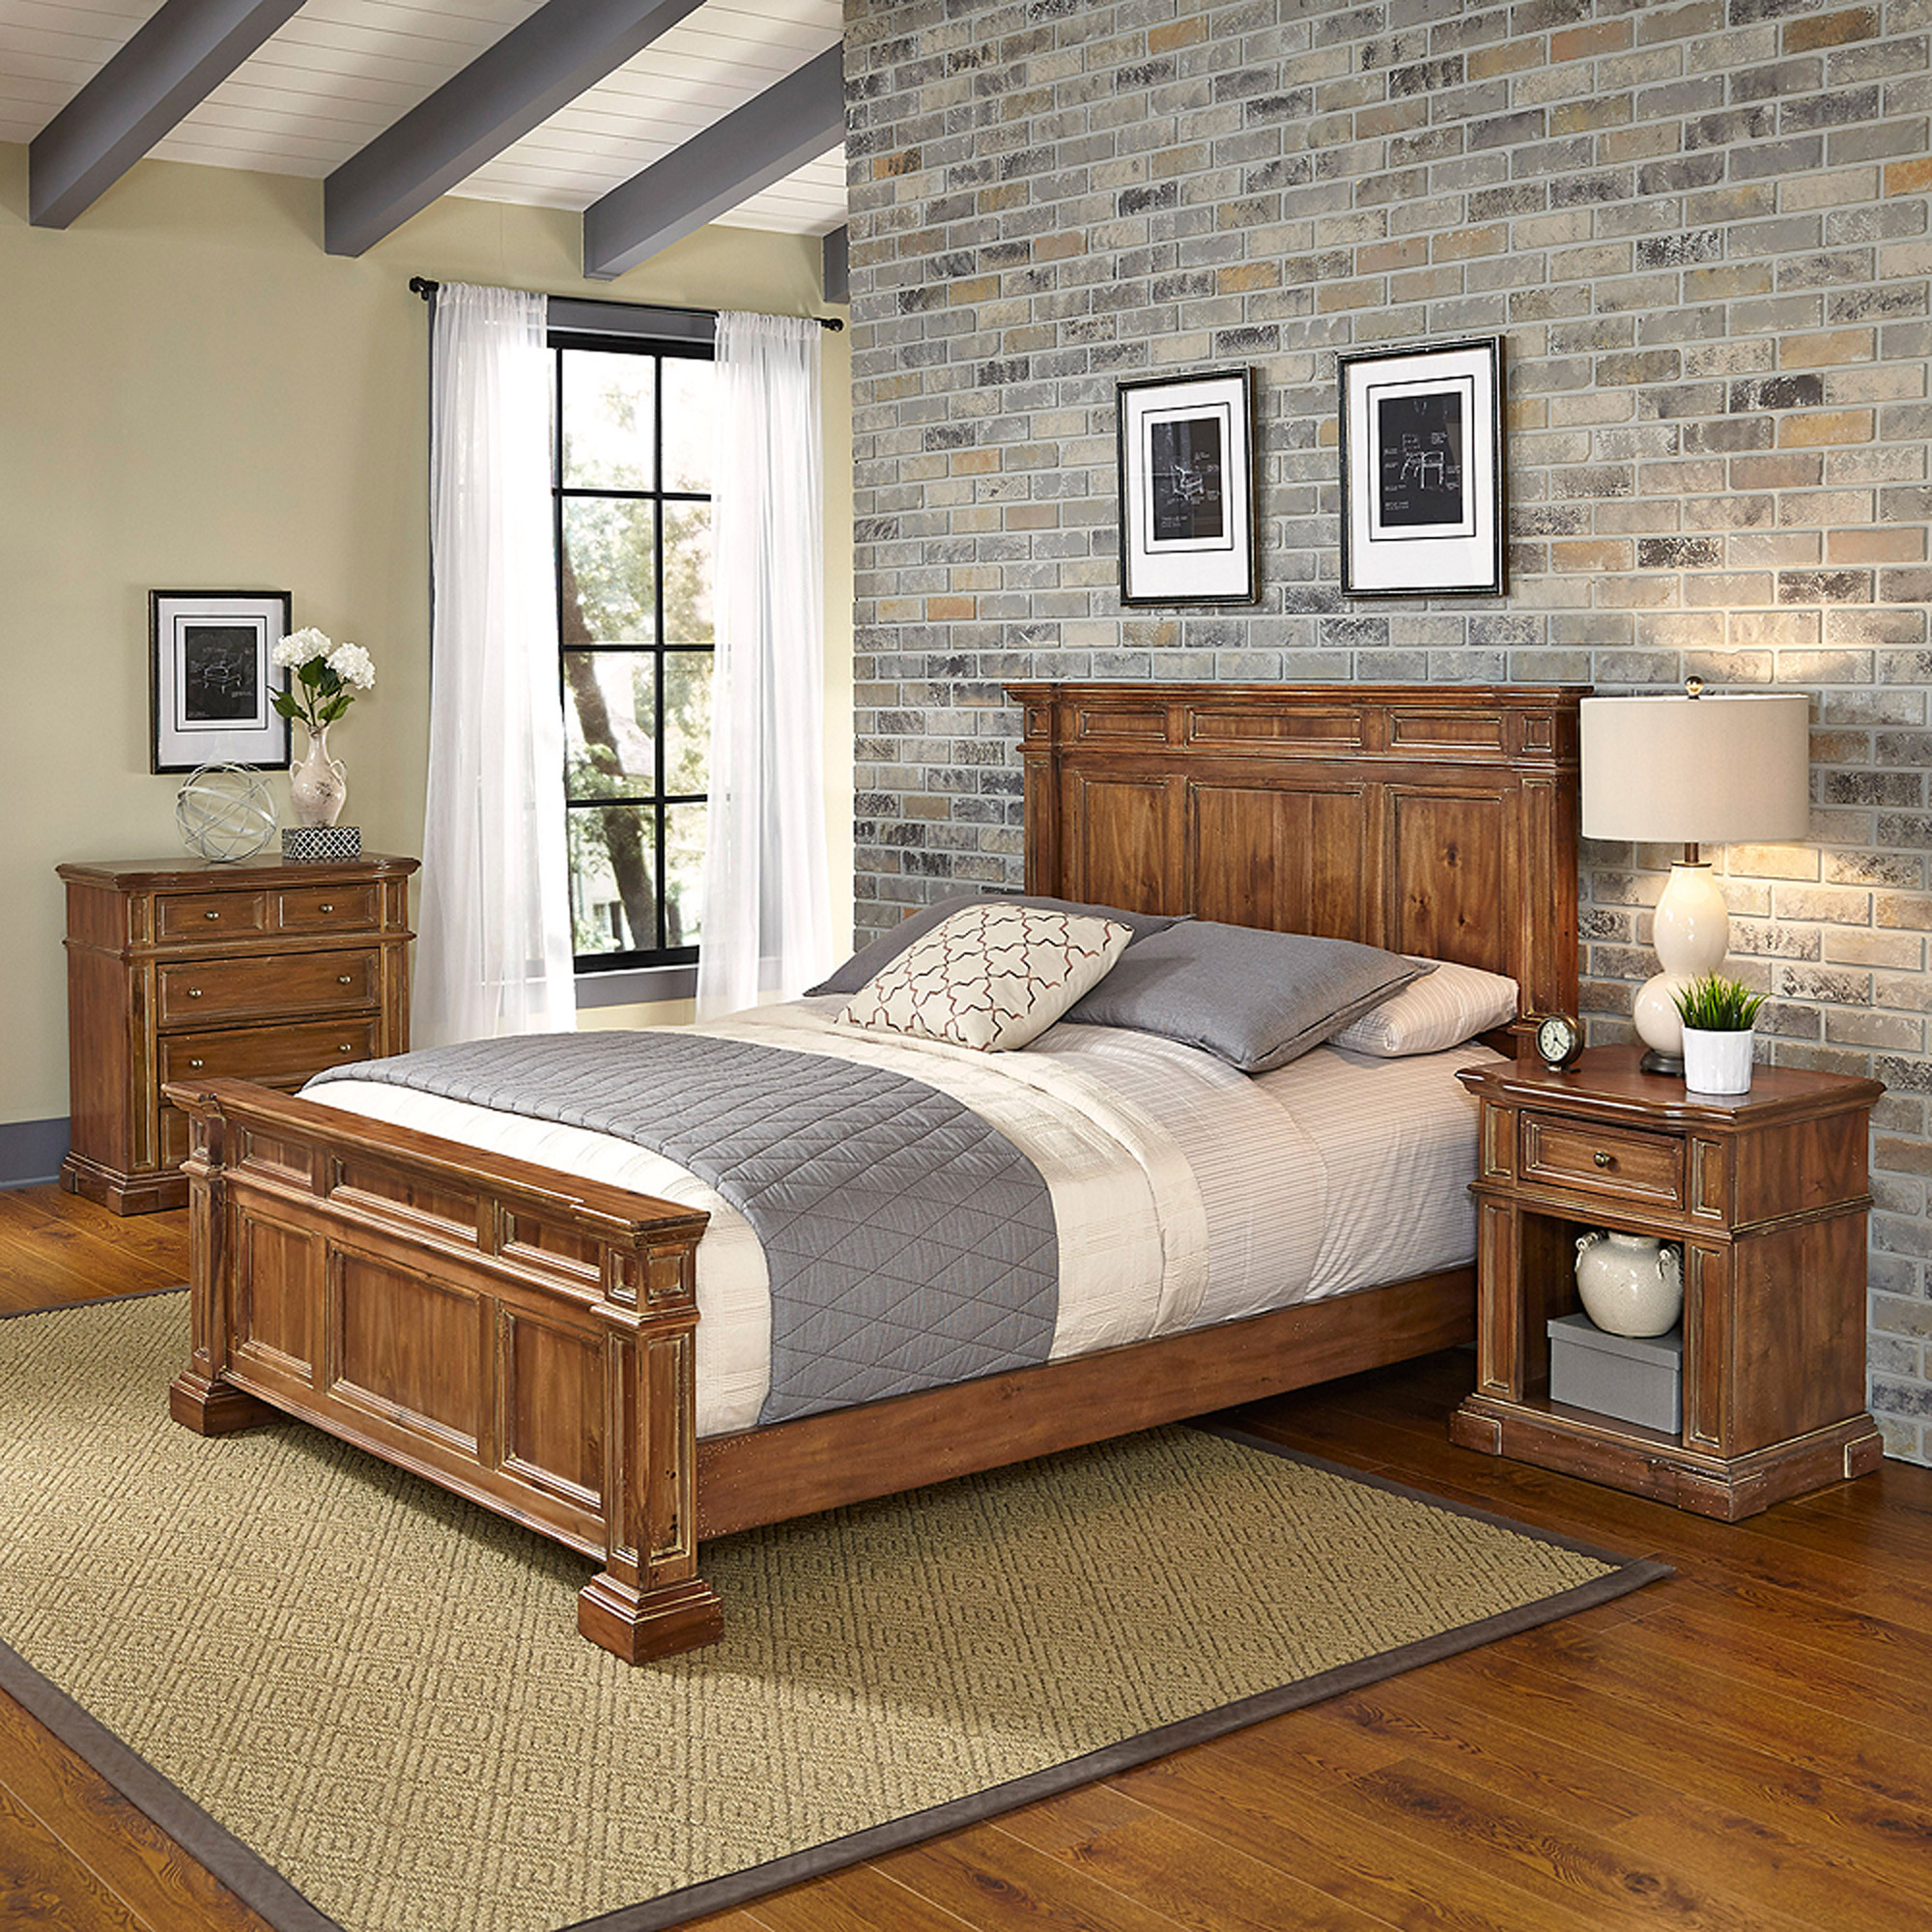 Home Styles Americana Vintage Queen Bed, Night Stand and Chest